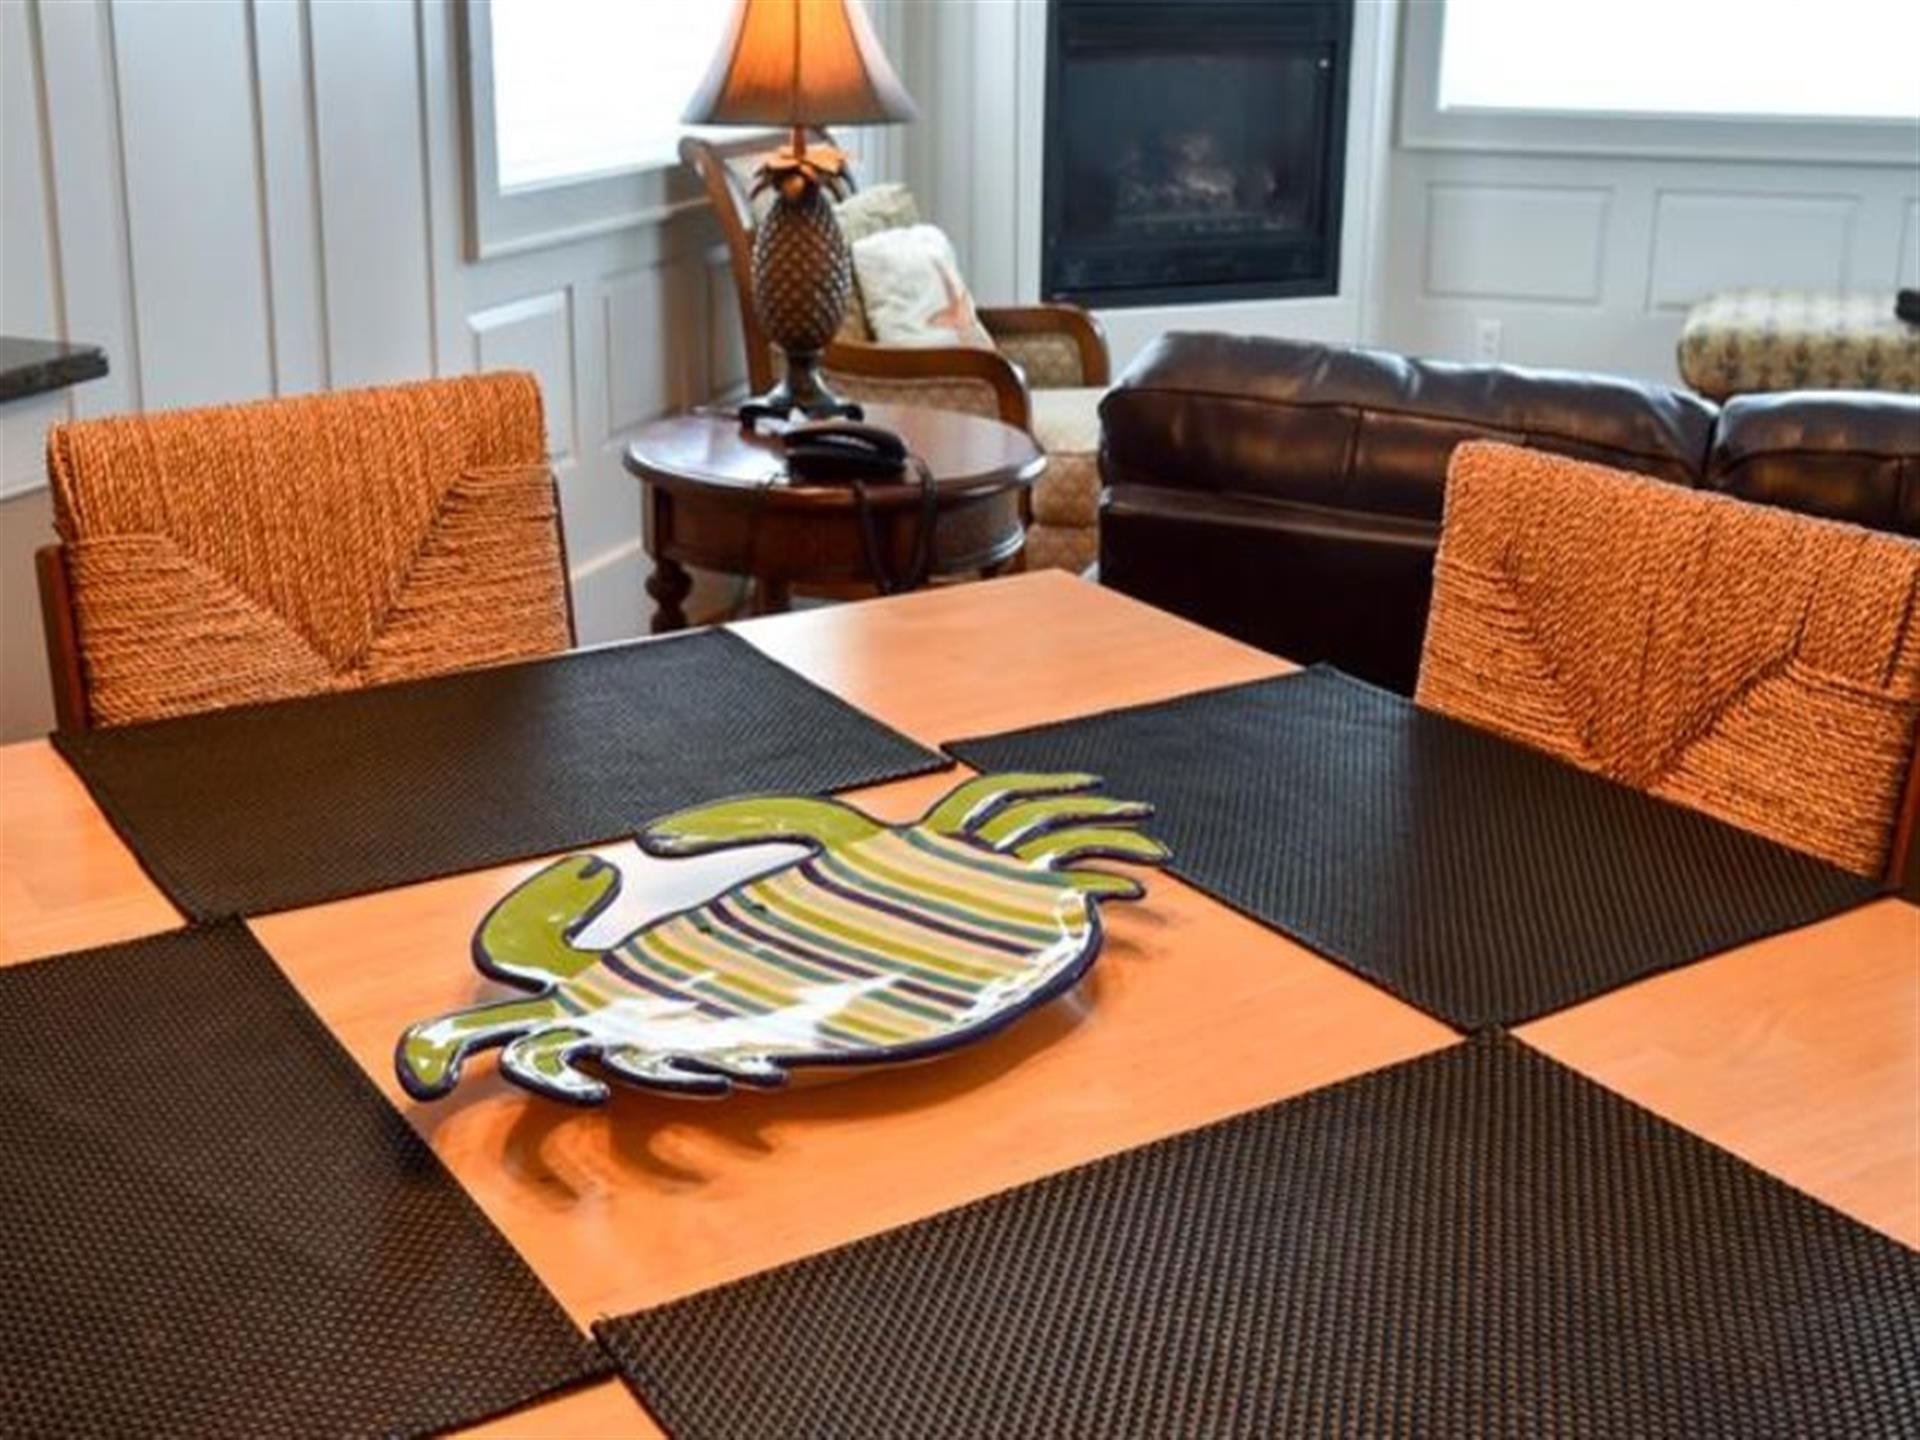 dining room table with a a crab plate on it